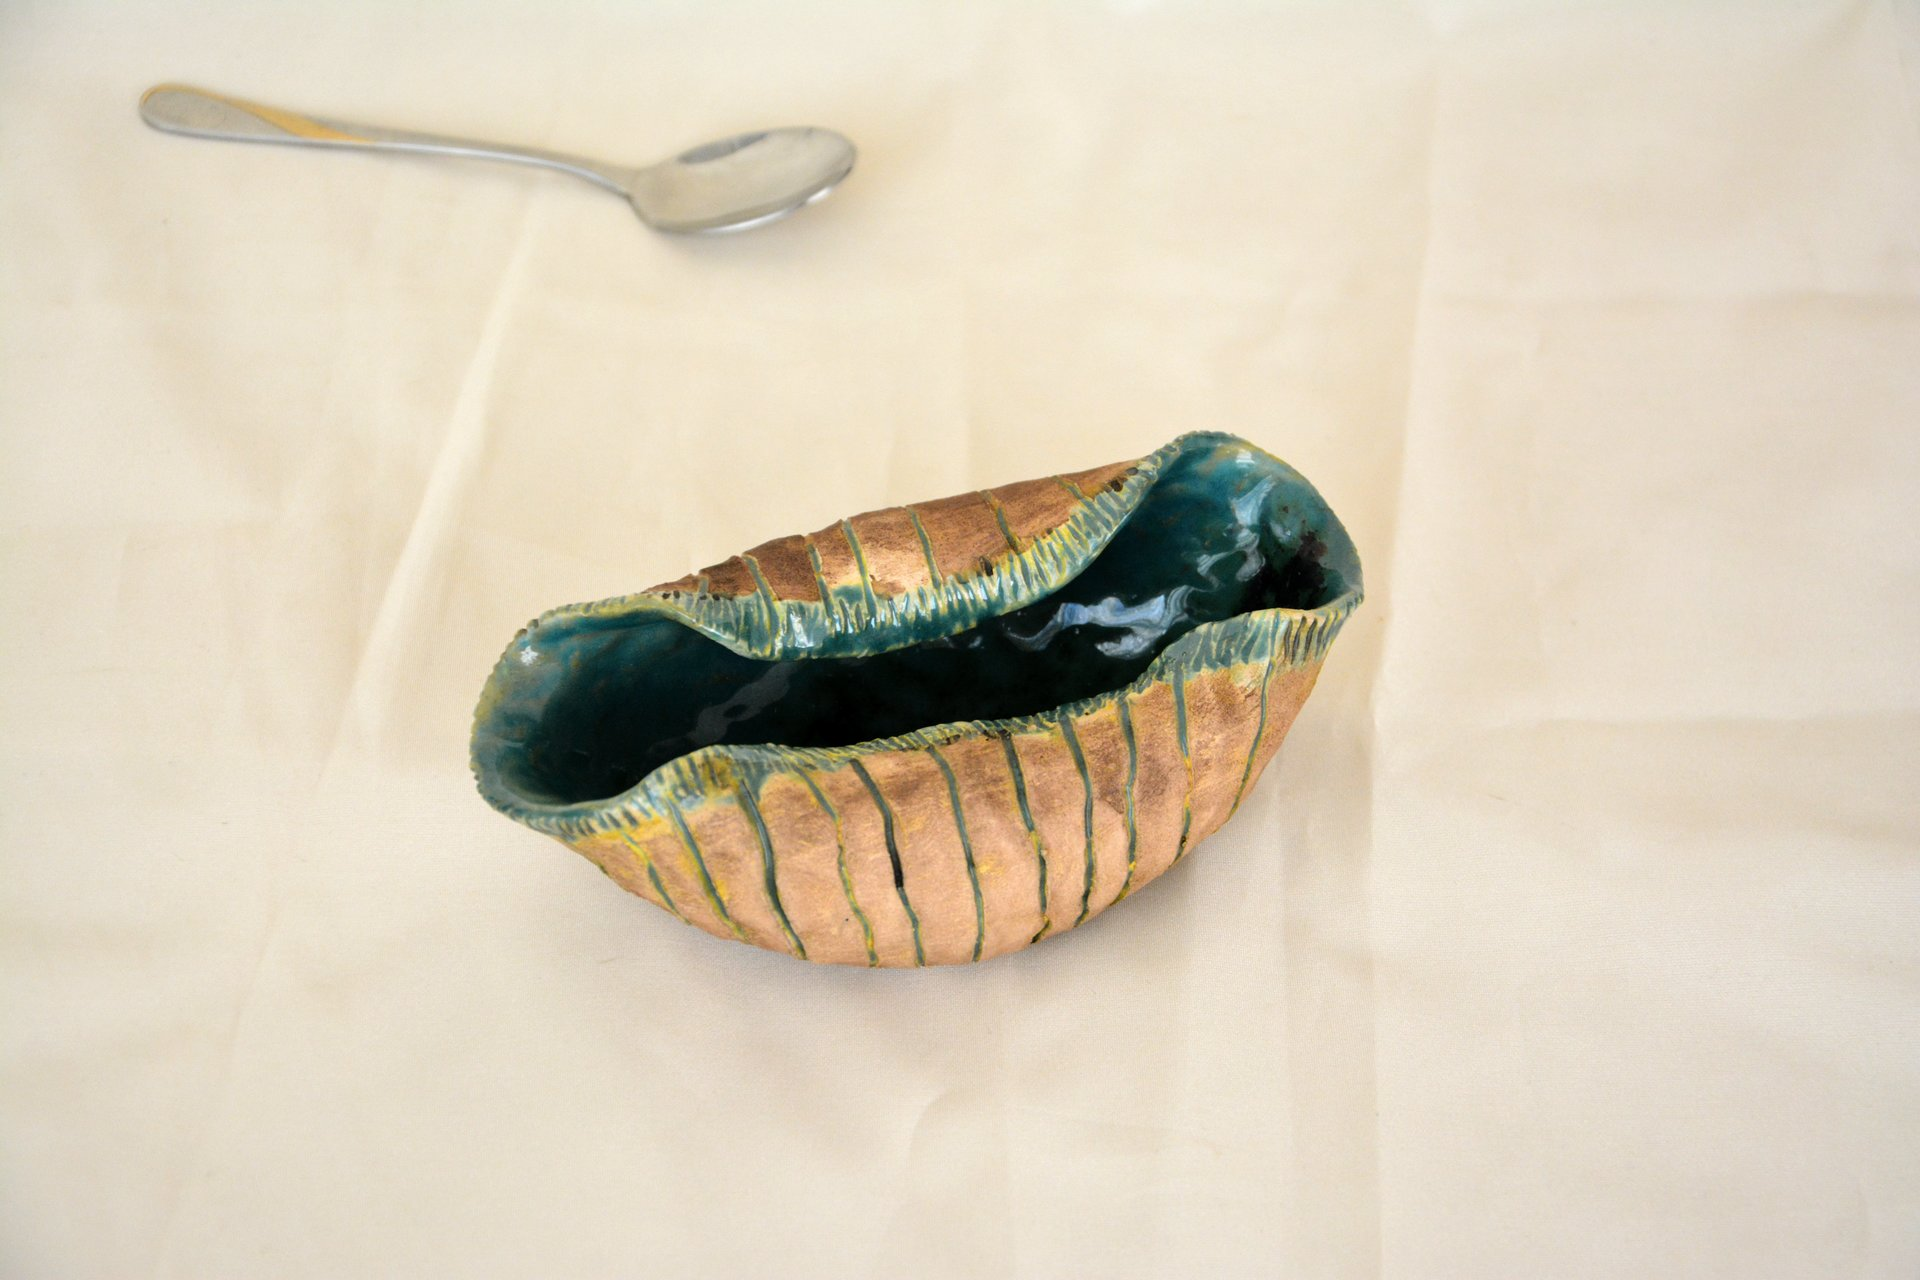 Sea shell - Pialy and sauceboats, height 5 cm, length - 15 cm, photo 1 of 1.